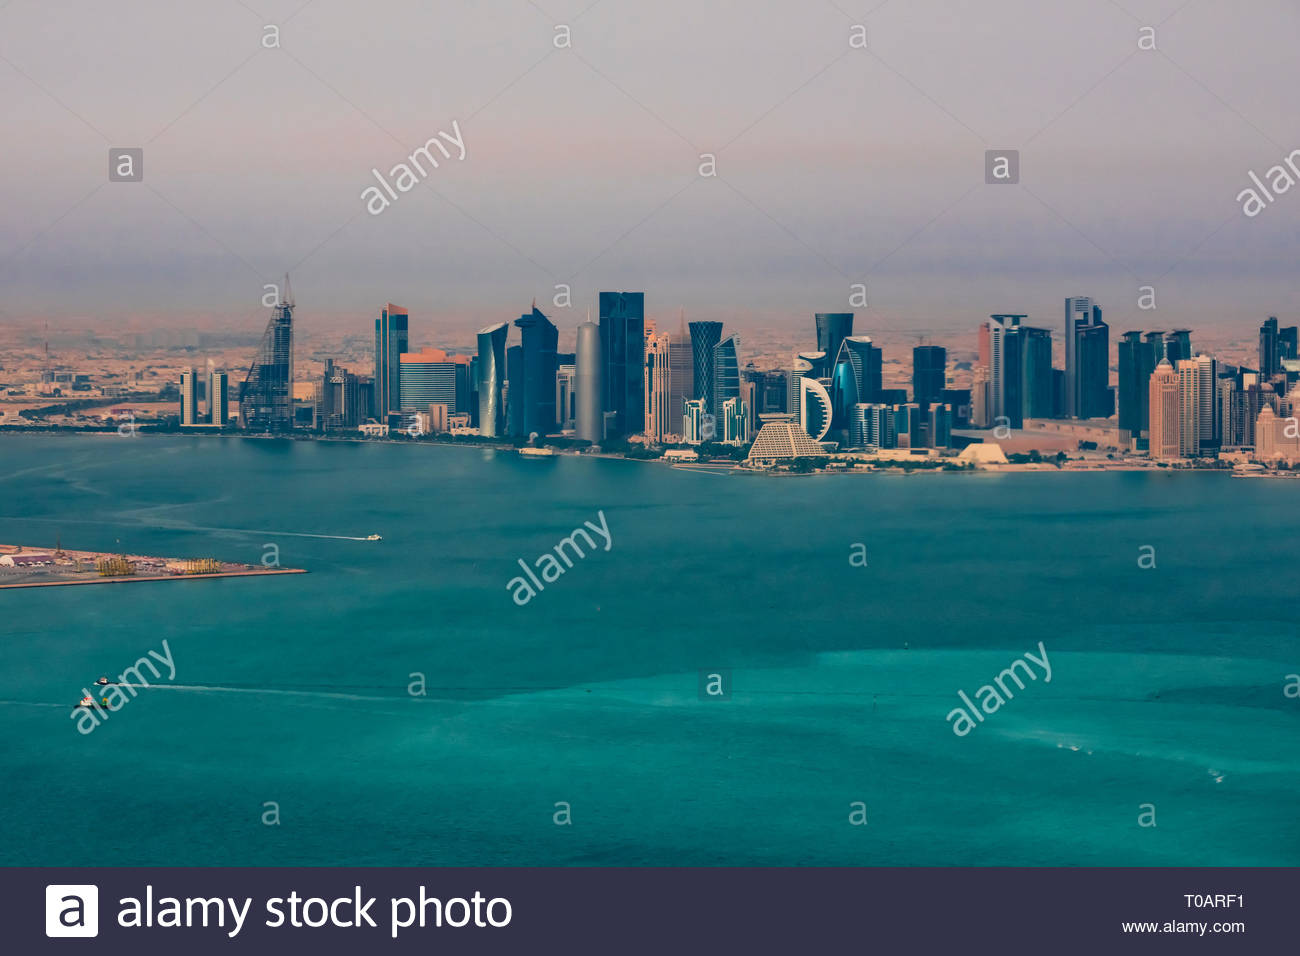 Aerial view of skyscrapers lining the Cornice, the waterfront promenade in Doha, Qatar in the Persian Gulf. - Stock Image